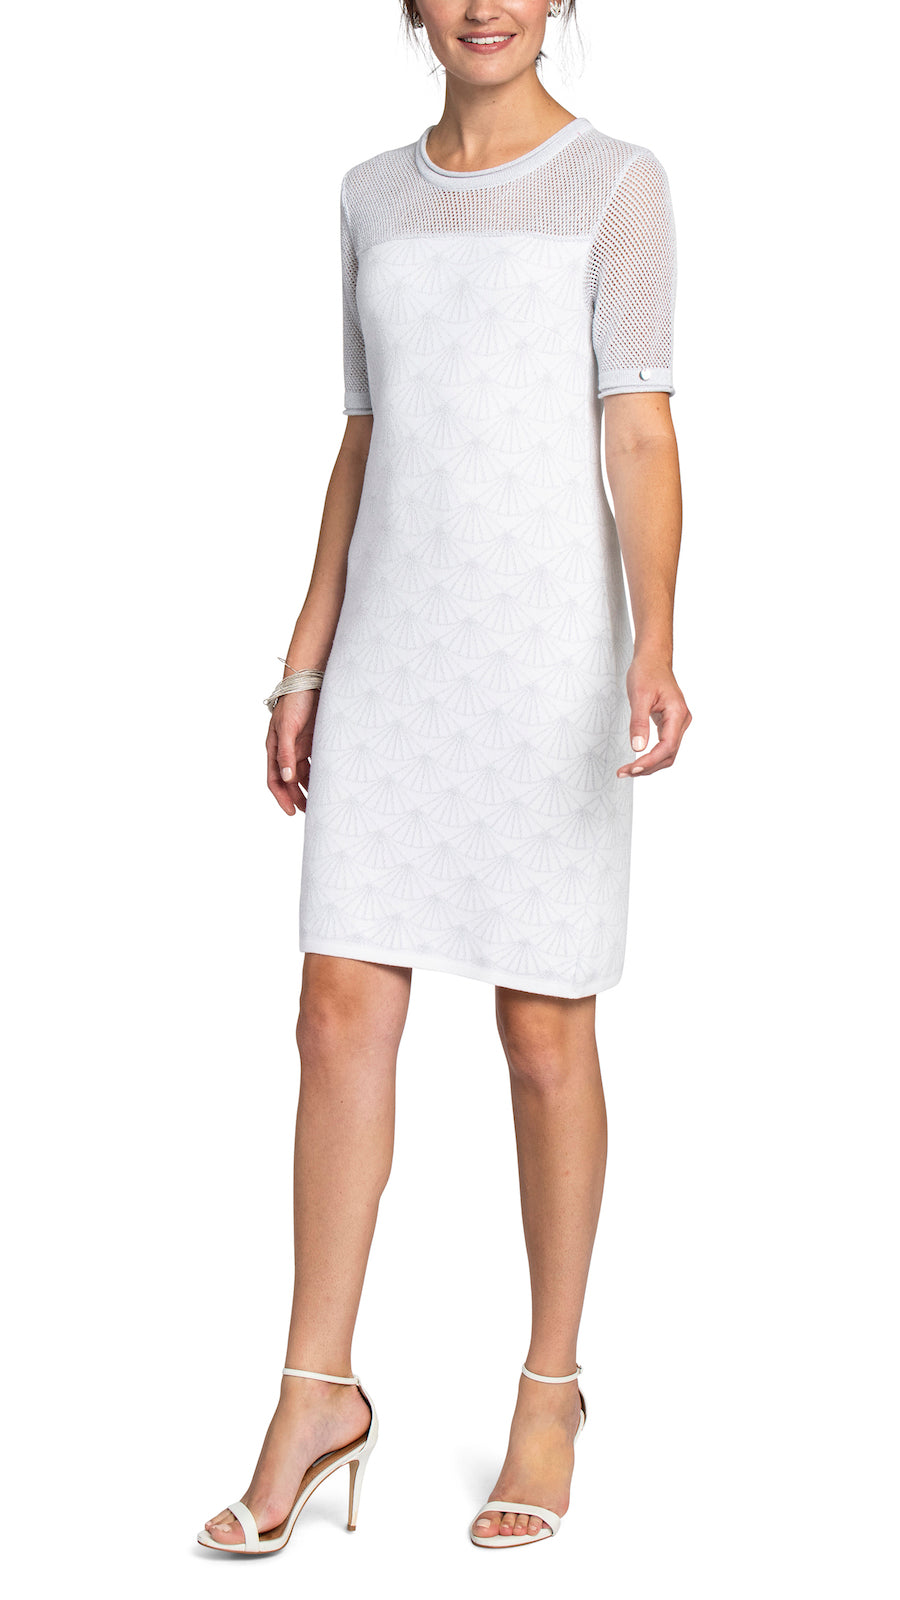 CONTEMPO Jasmine Dress, White/Silver